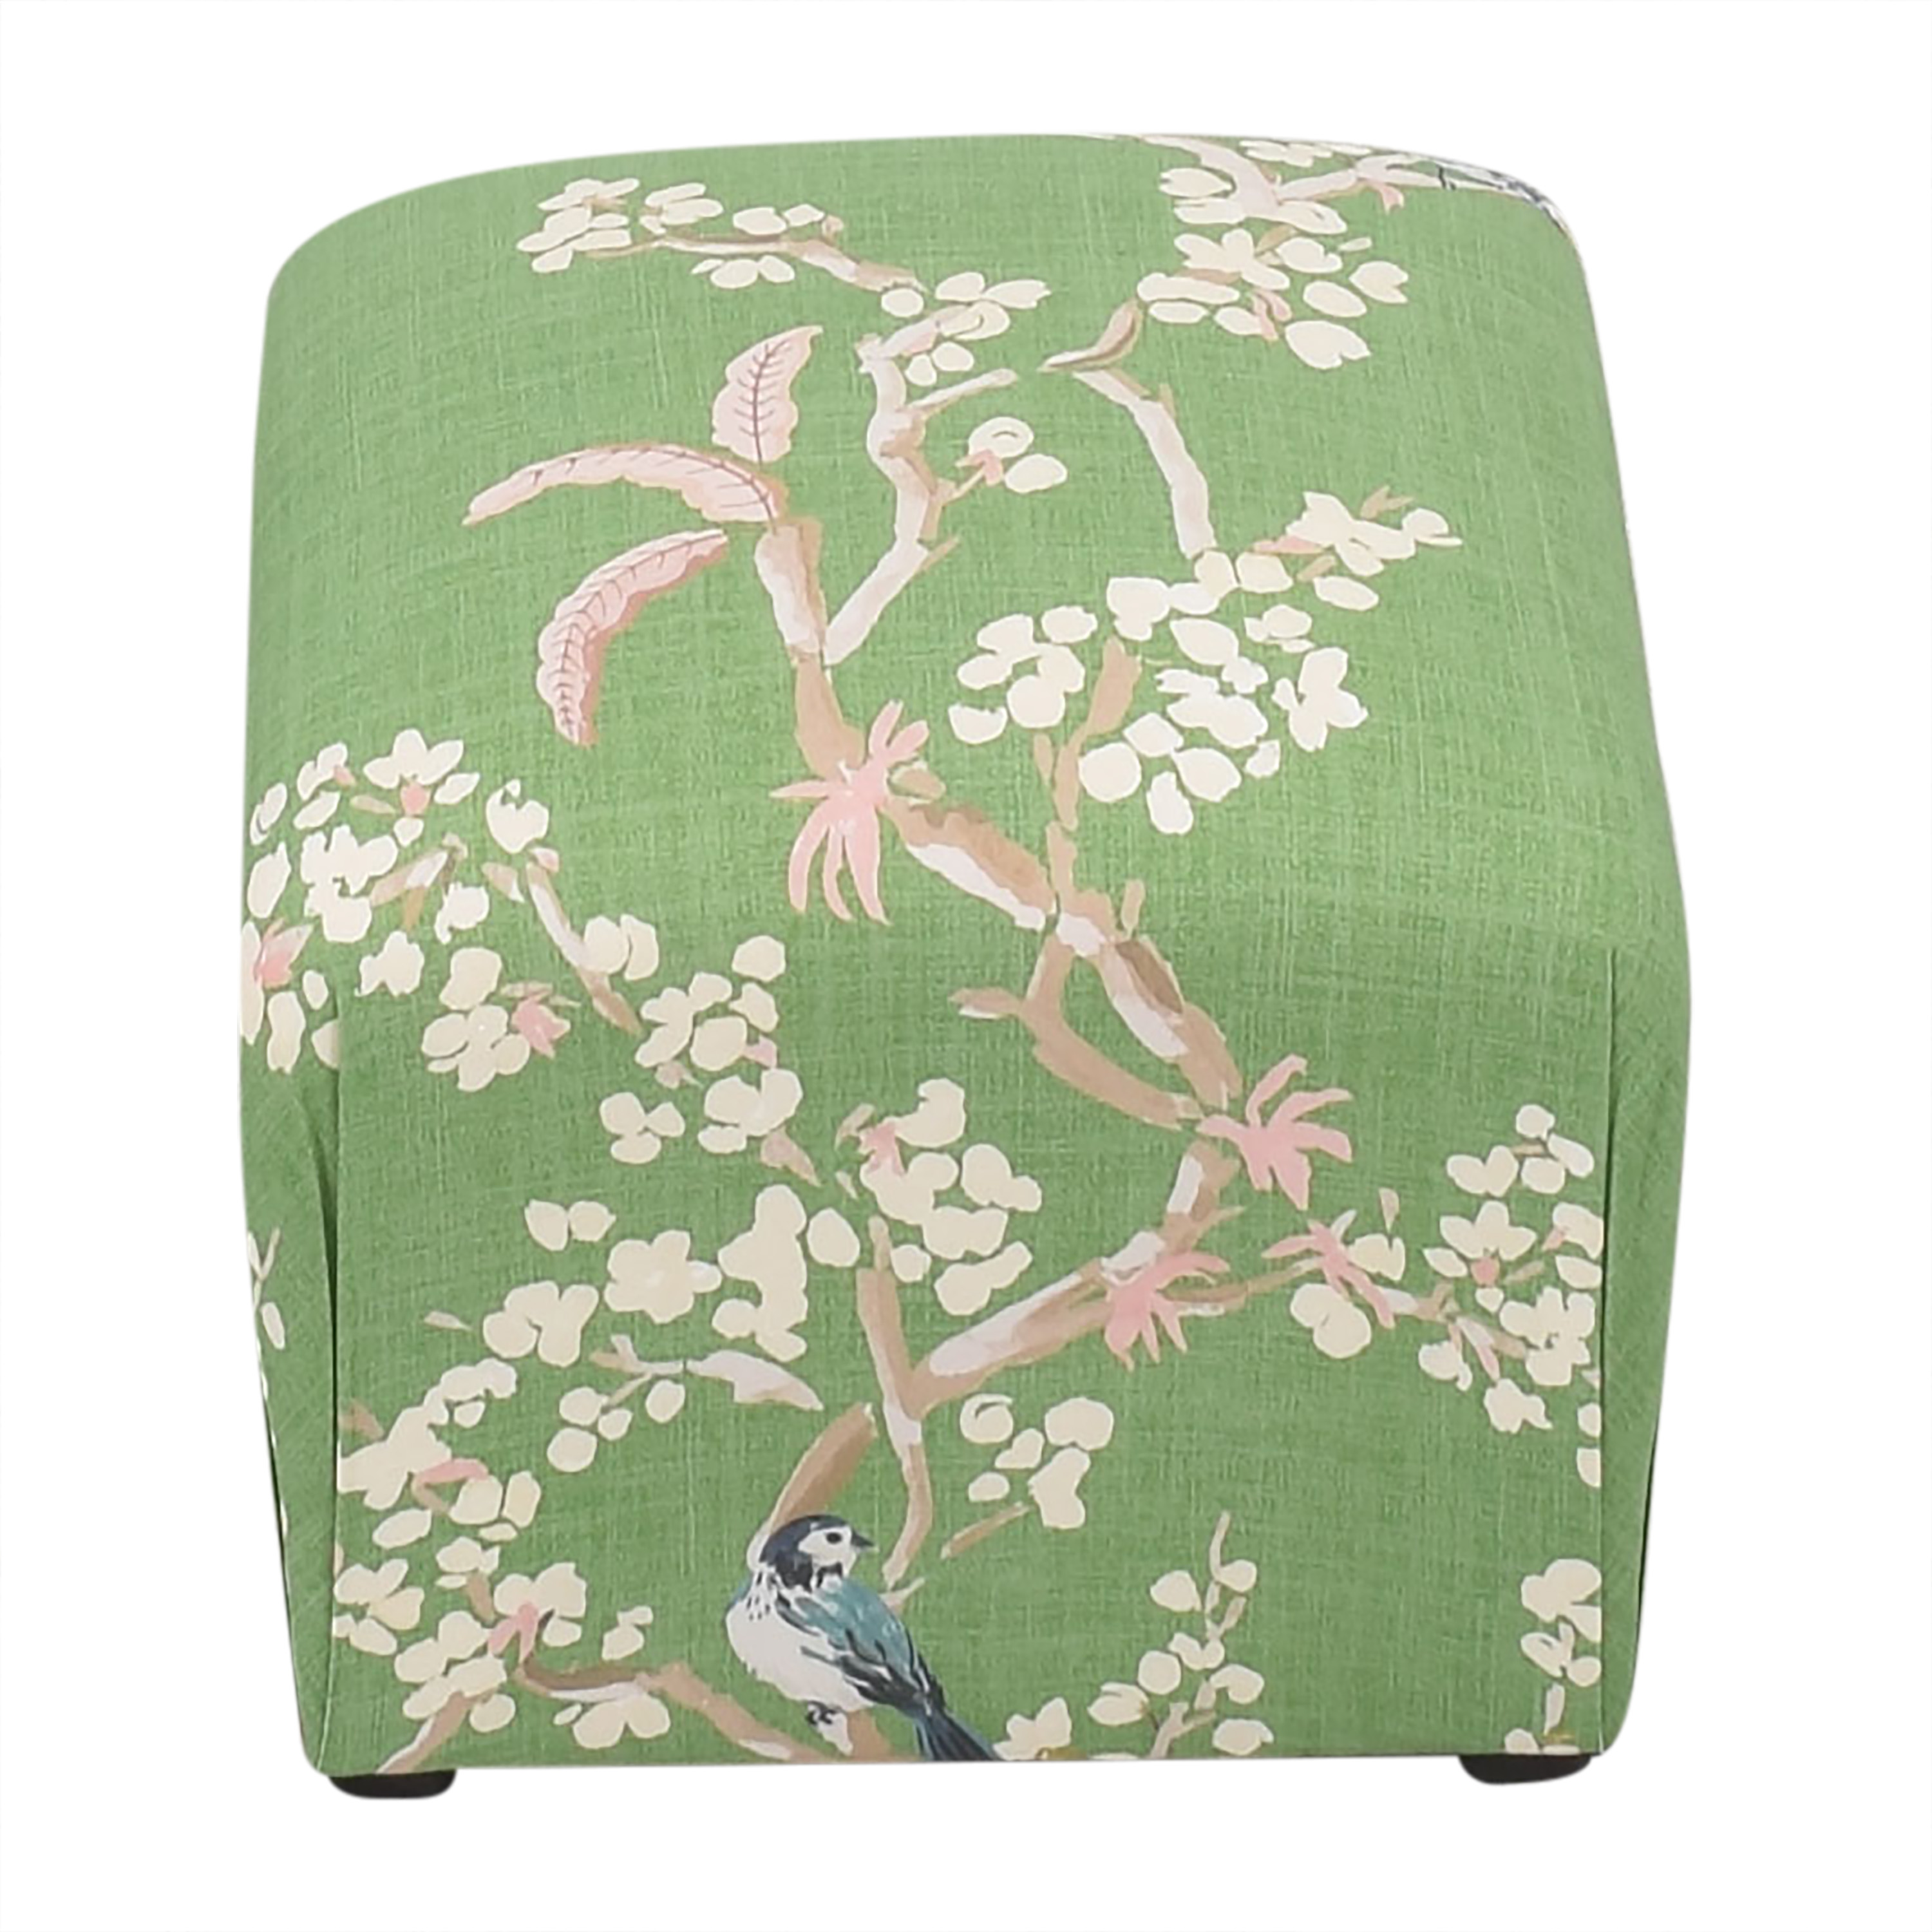 The Inside The Inside Cherry Blossom Deco Ottoman coupon